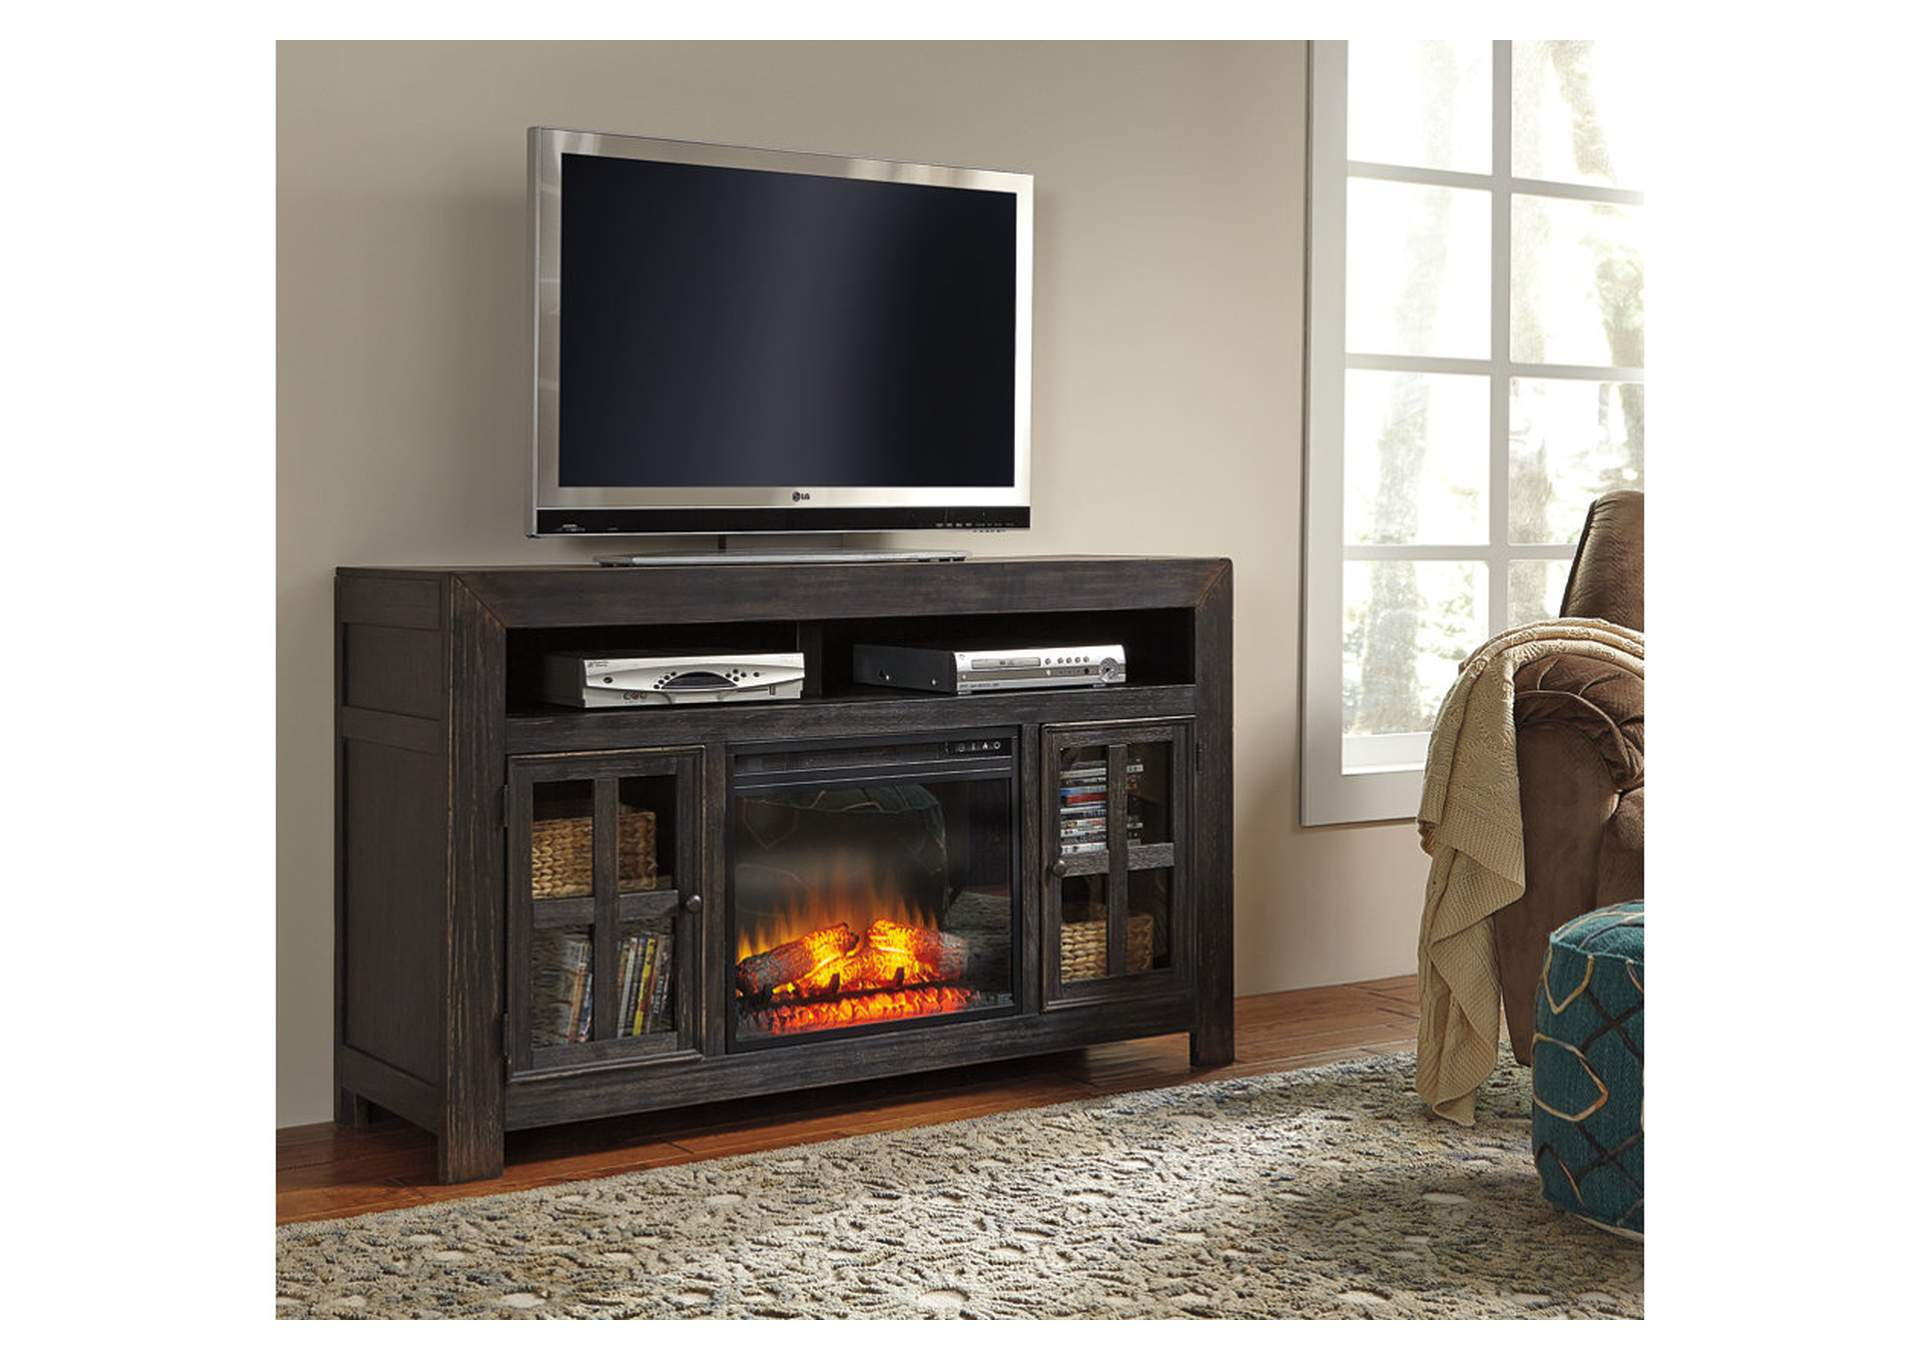 W A Akins & Sons Gavelston TV Stand w LED Fireplace